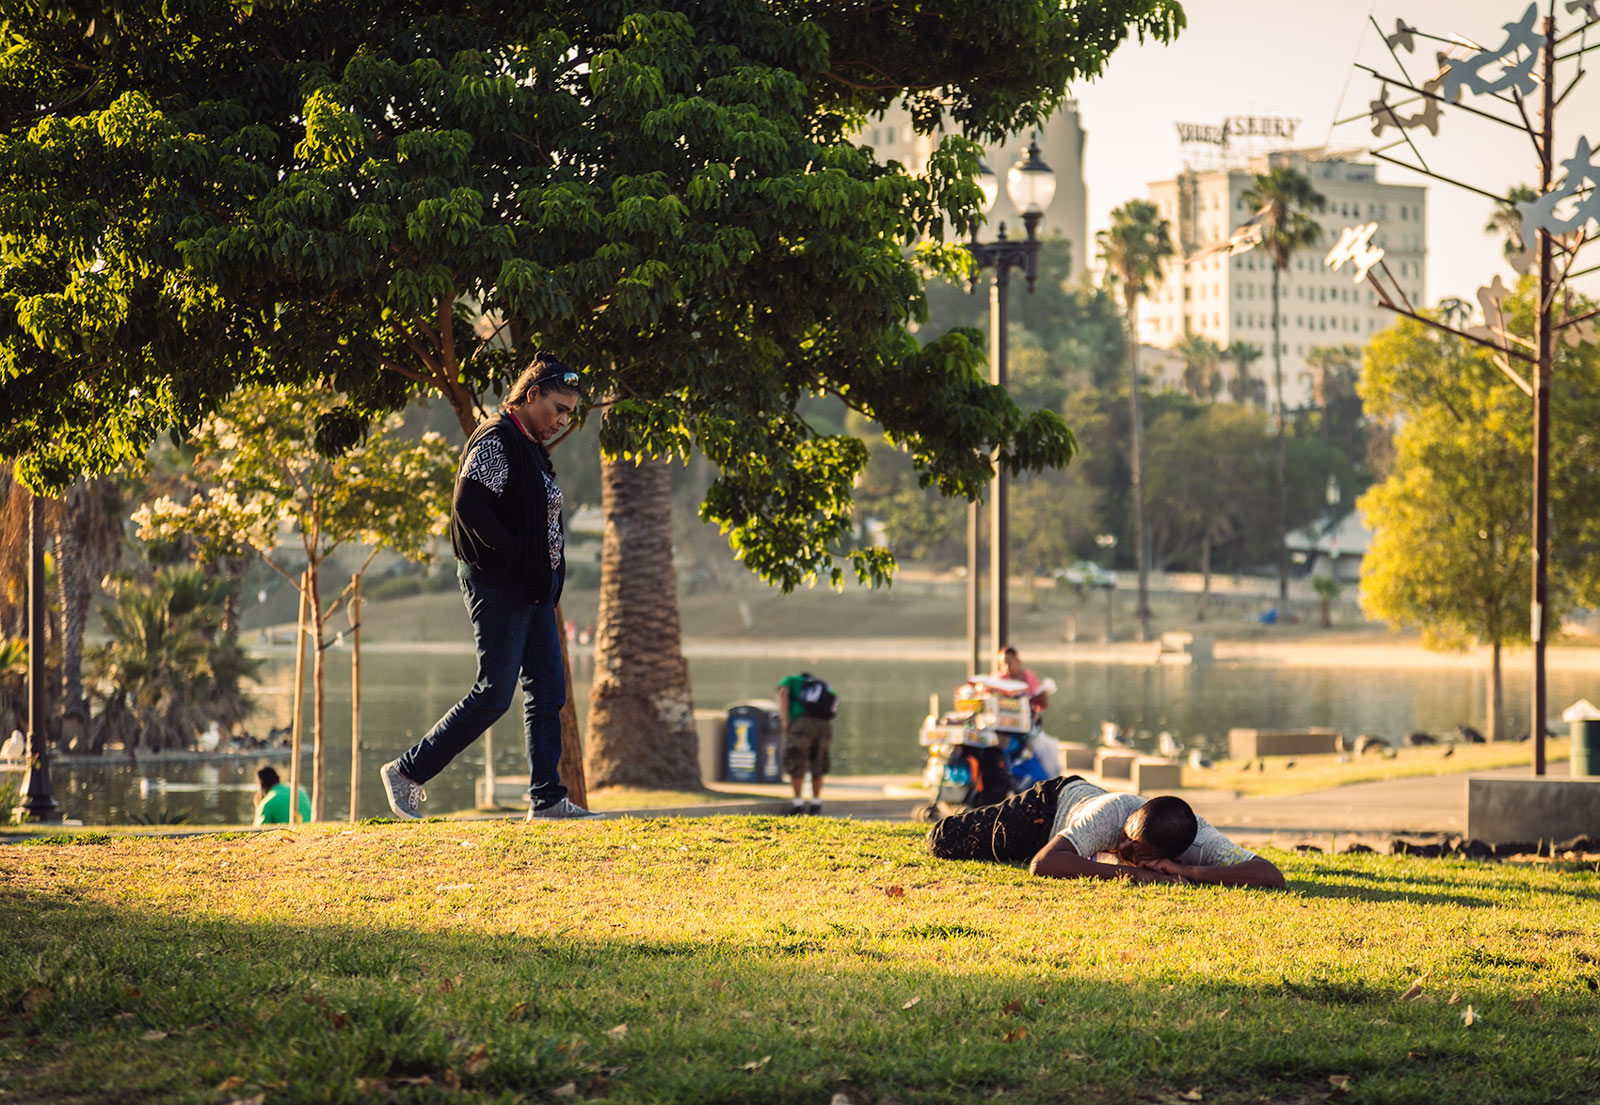 Echo Park on a Sunday Afternoon